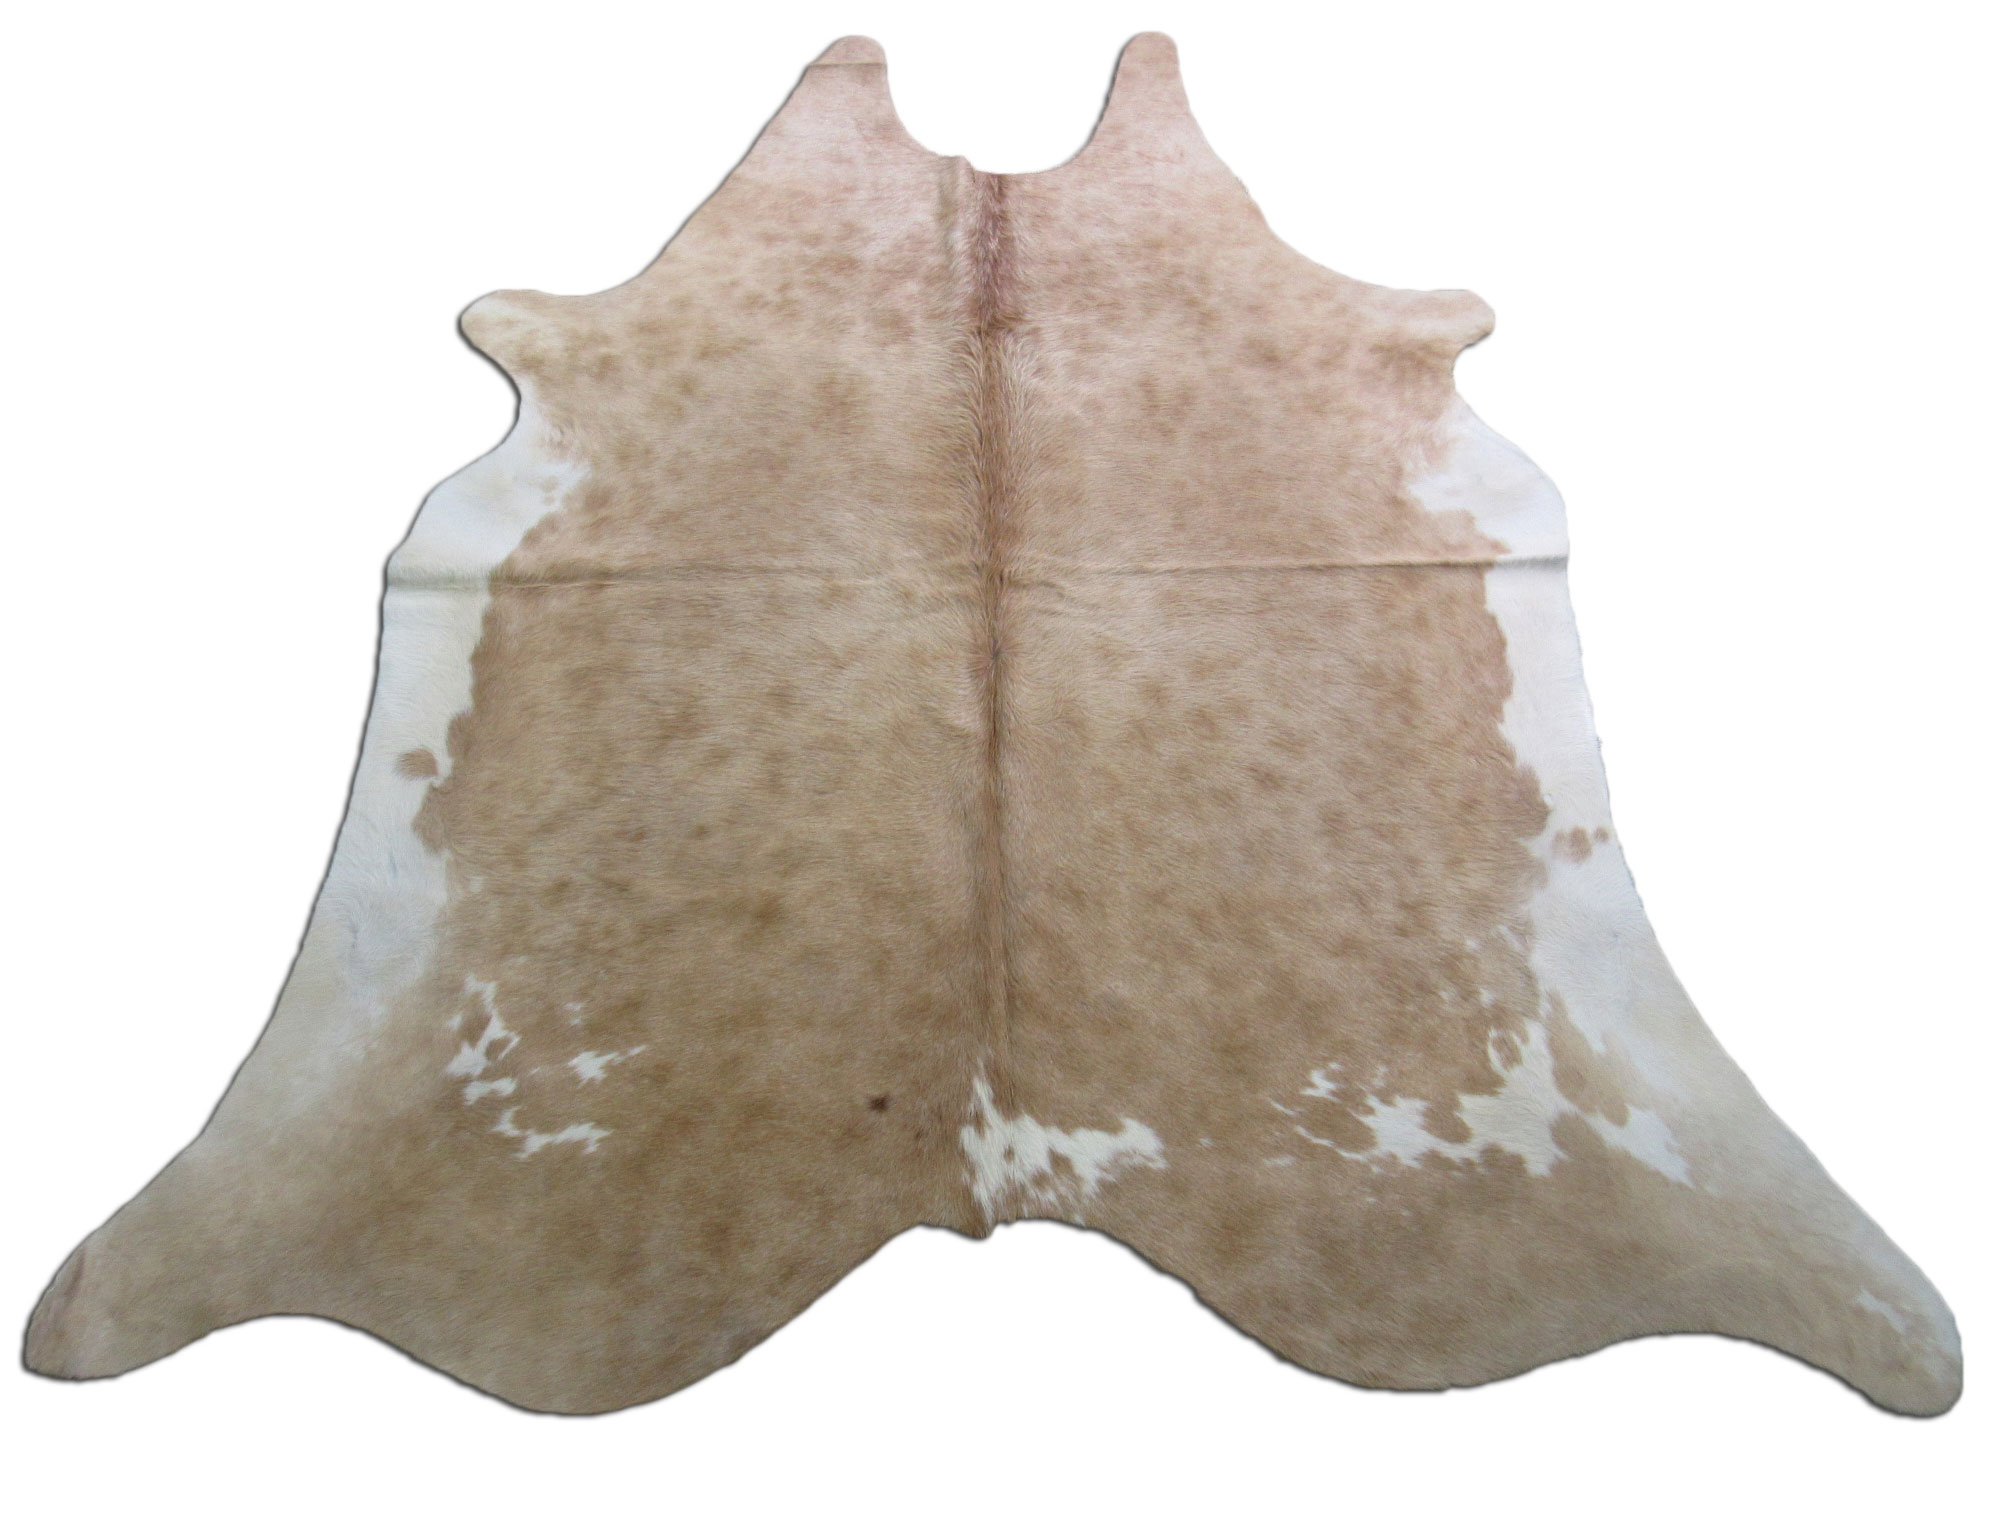 A-1229 Beige and White Speckled Cowhide Rug Size: 7 1/2' X 6 3/4'